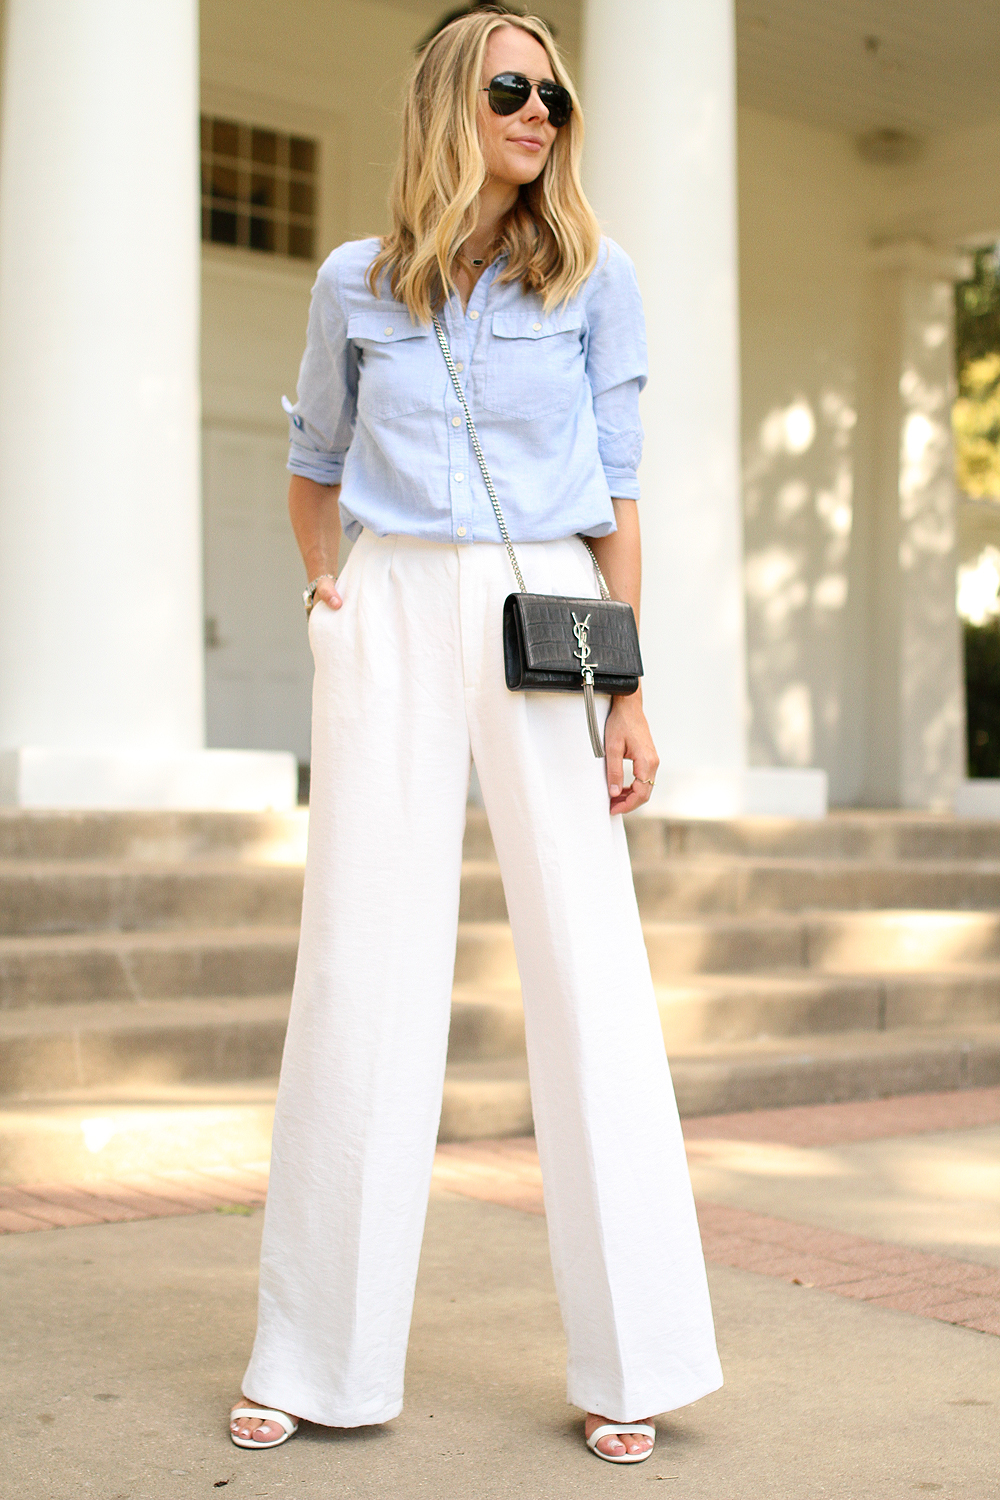 WHITE WIDE LEG PANTS | Fashion Jackson